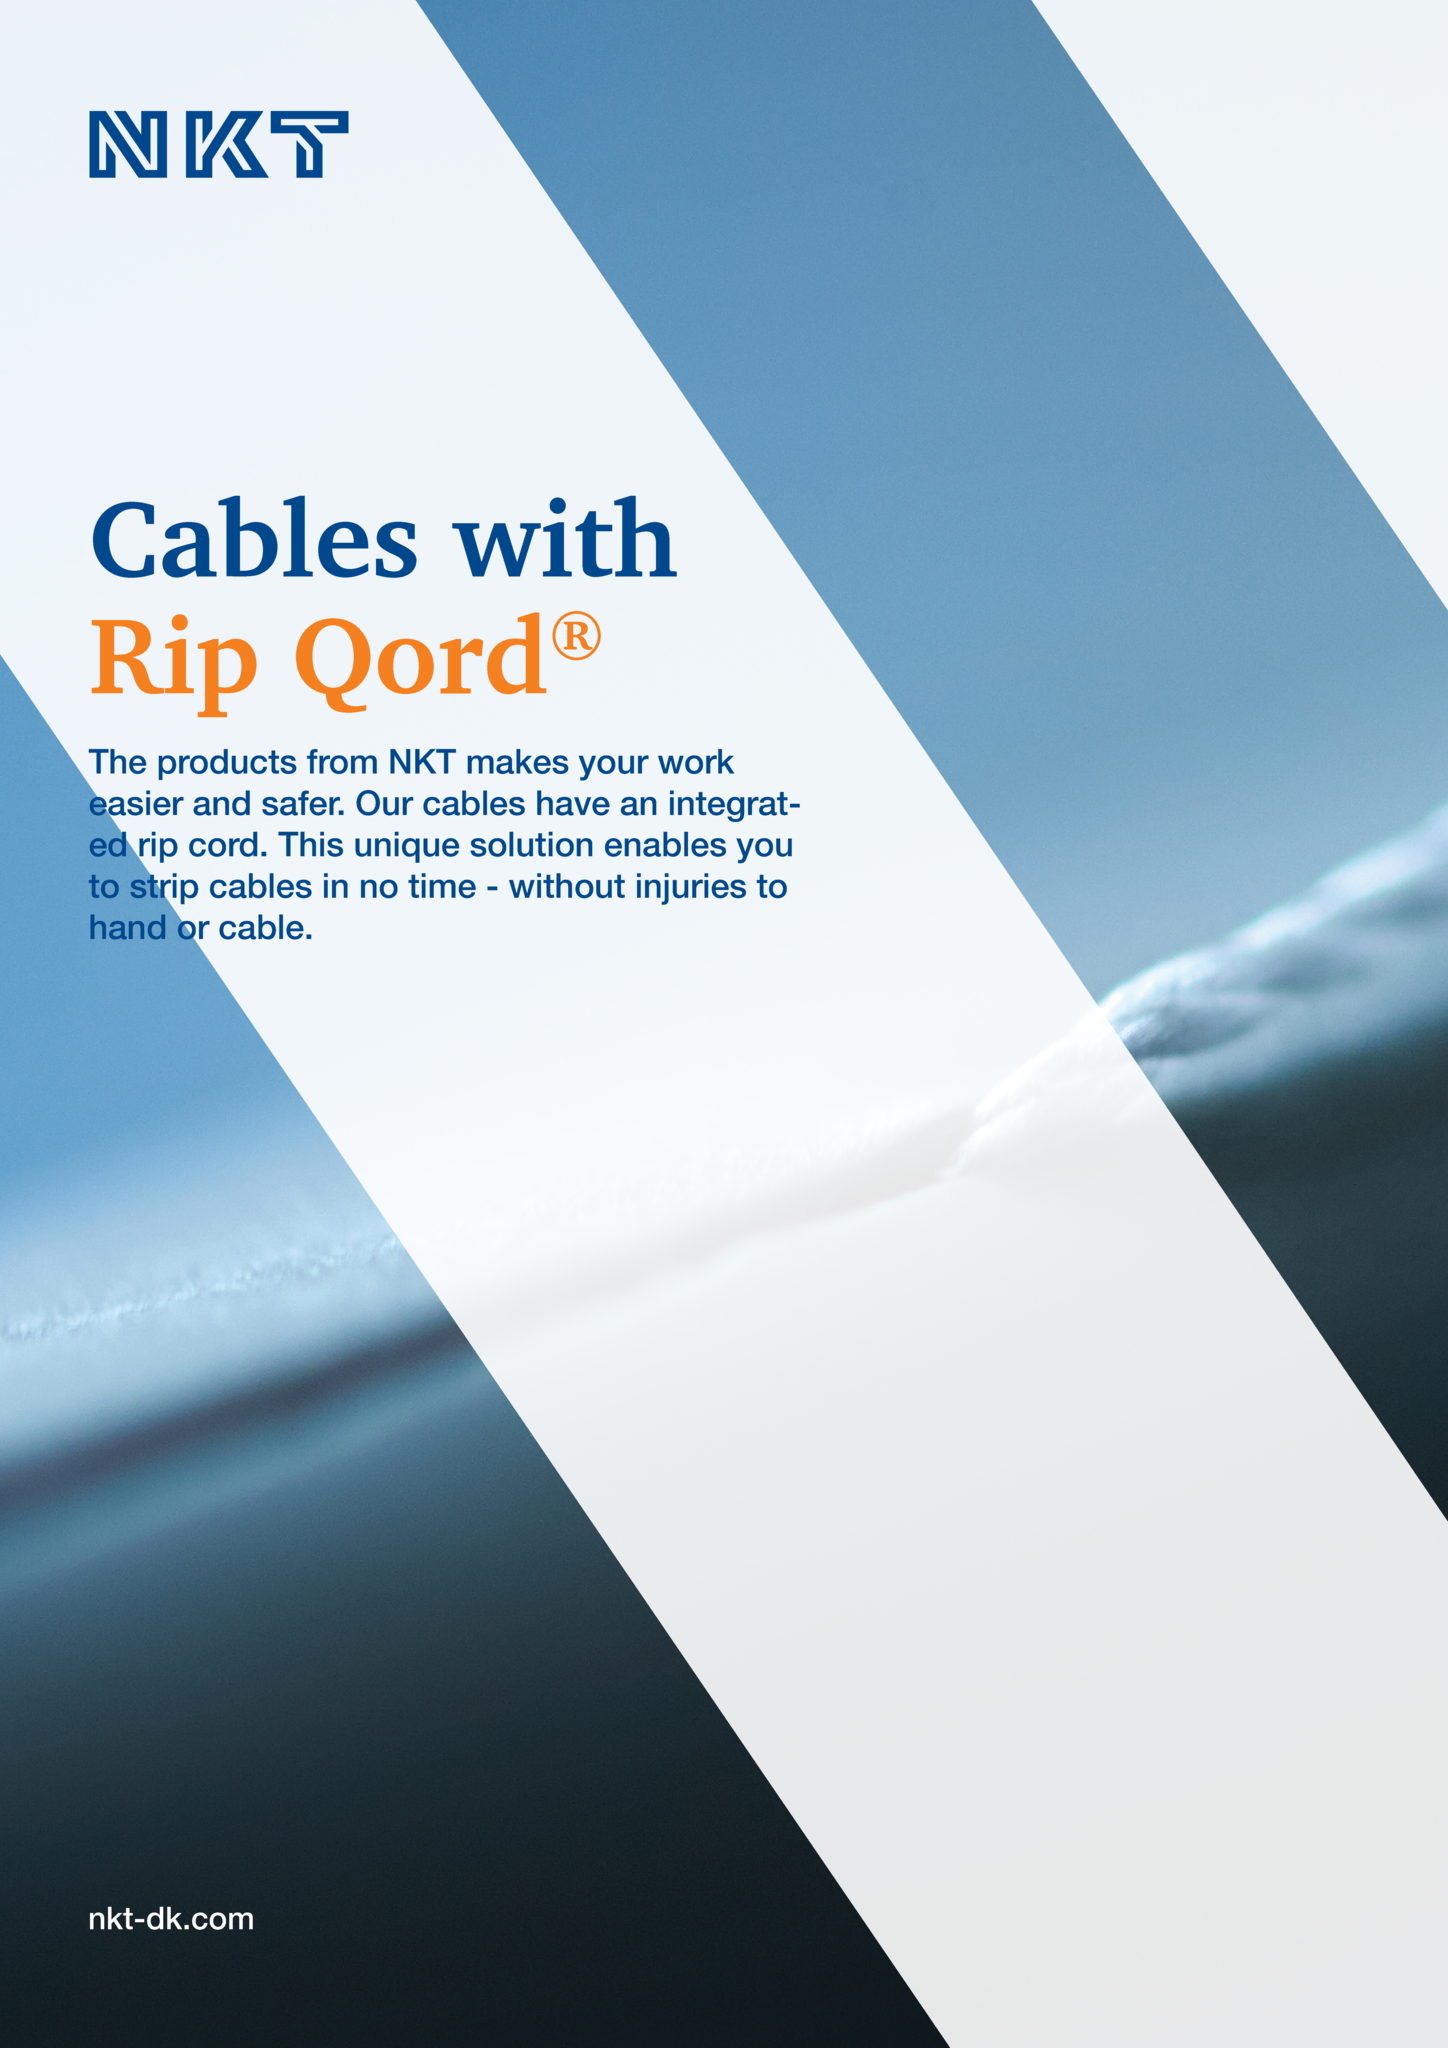 Referenceflyer_cables-with-rip-cord.pdf